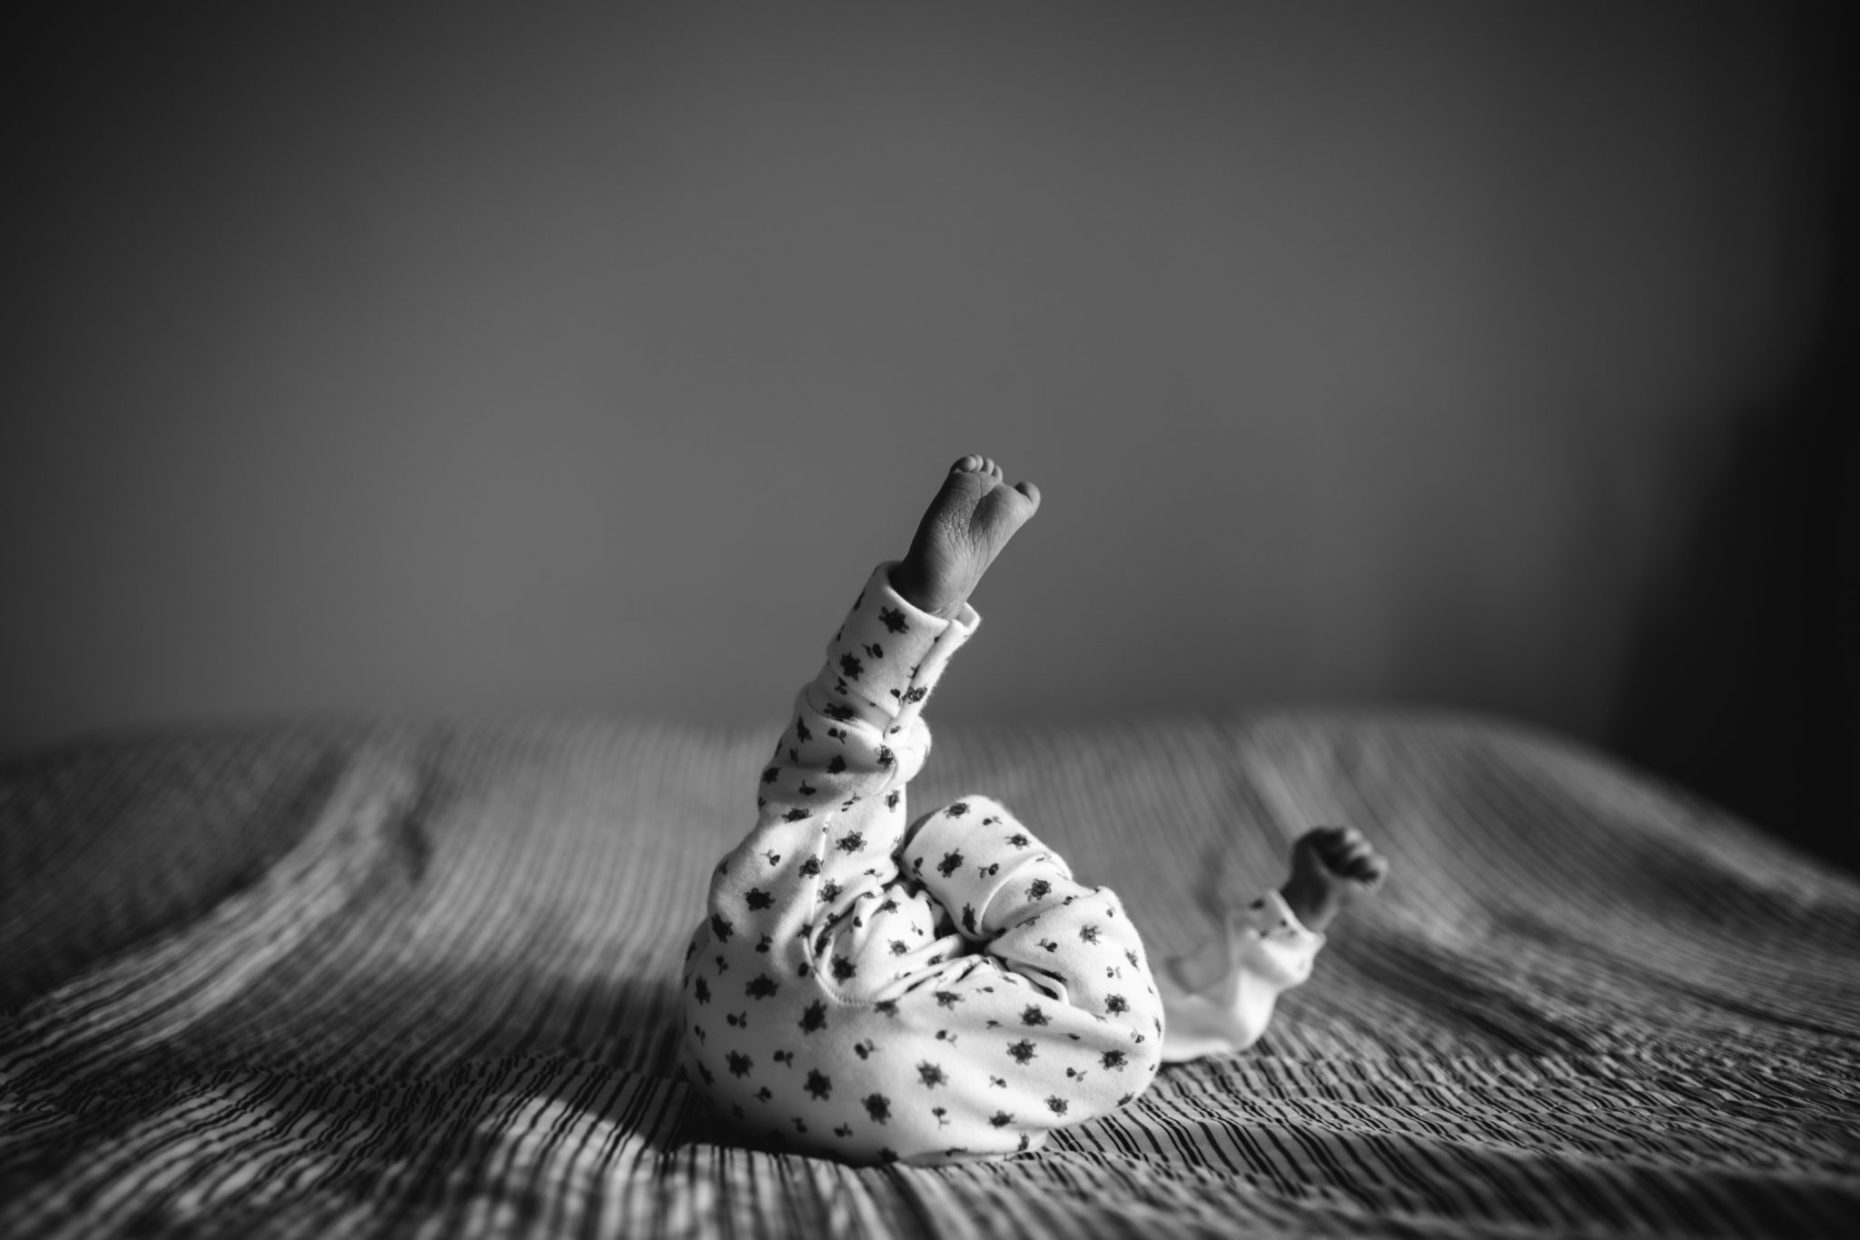 black and white photography of a newborn baby lying on a bed, wearing a white body with a little hearts pattern. She is stretching one leg, pointing to the roof